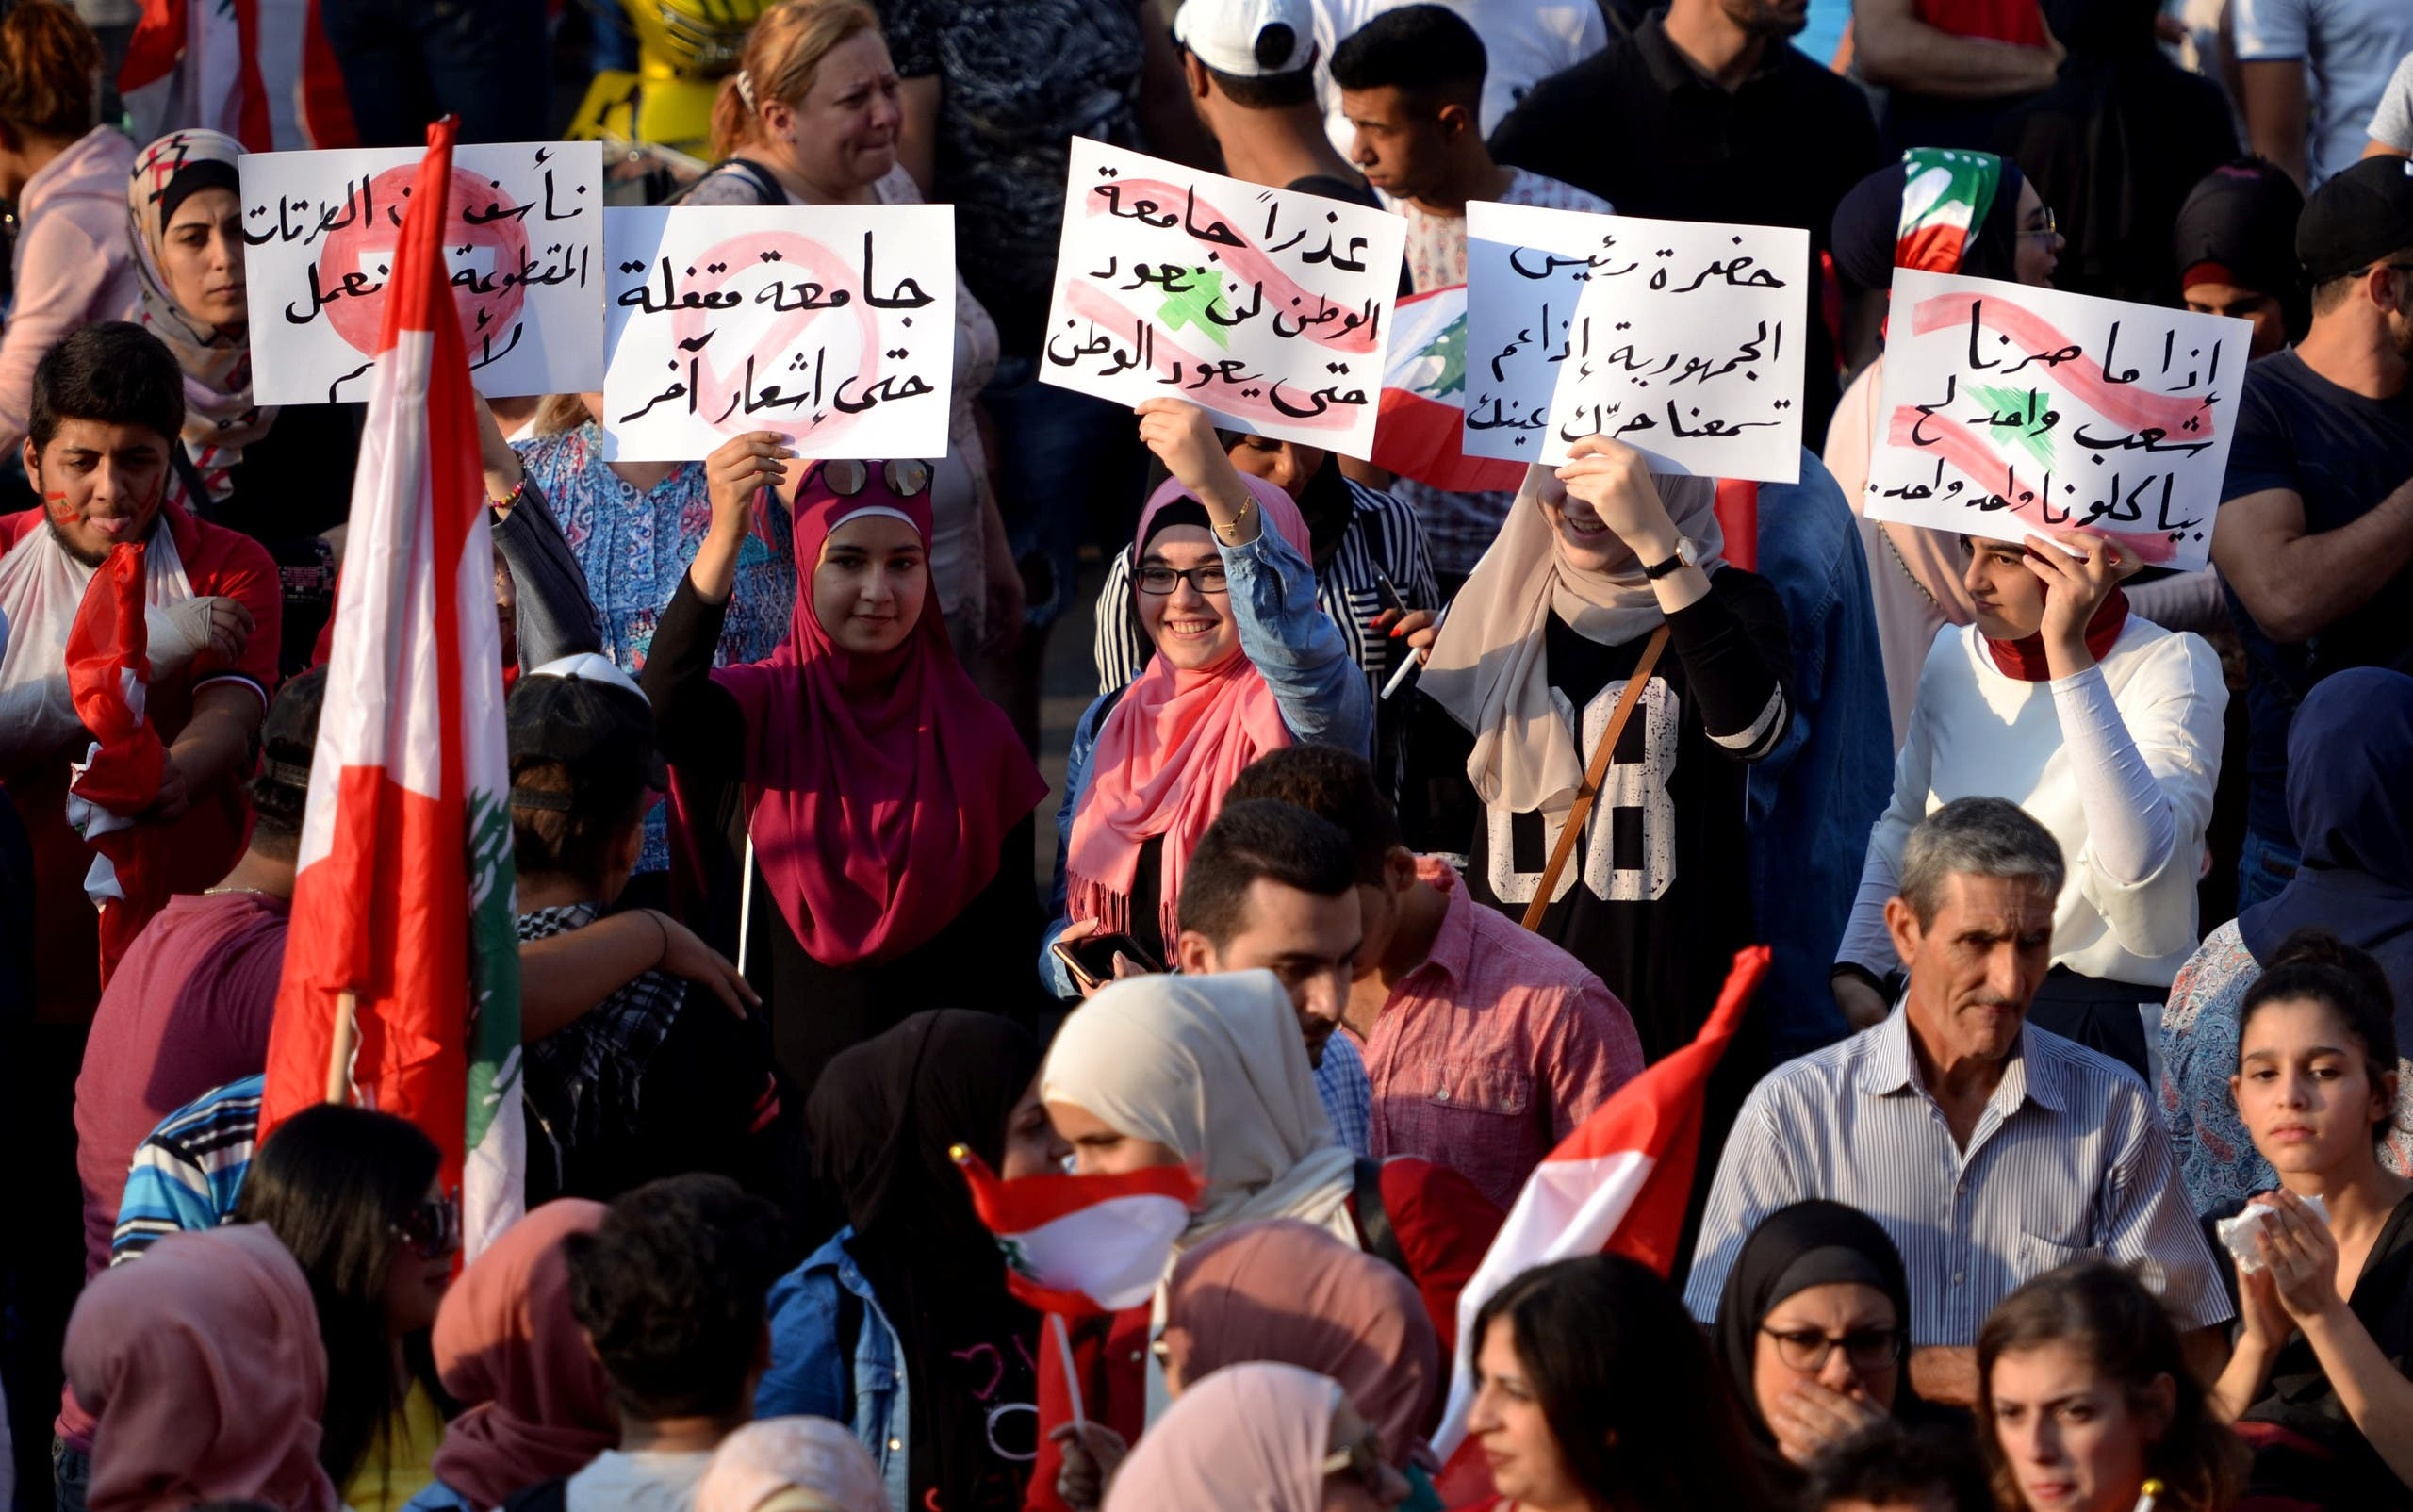 Protesters carry signs in Tripoli, Lebanon (Reuters)